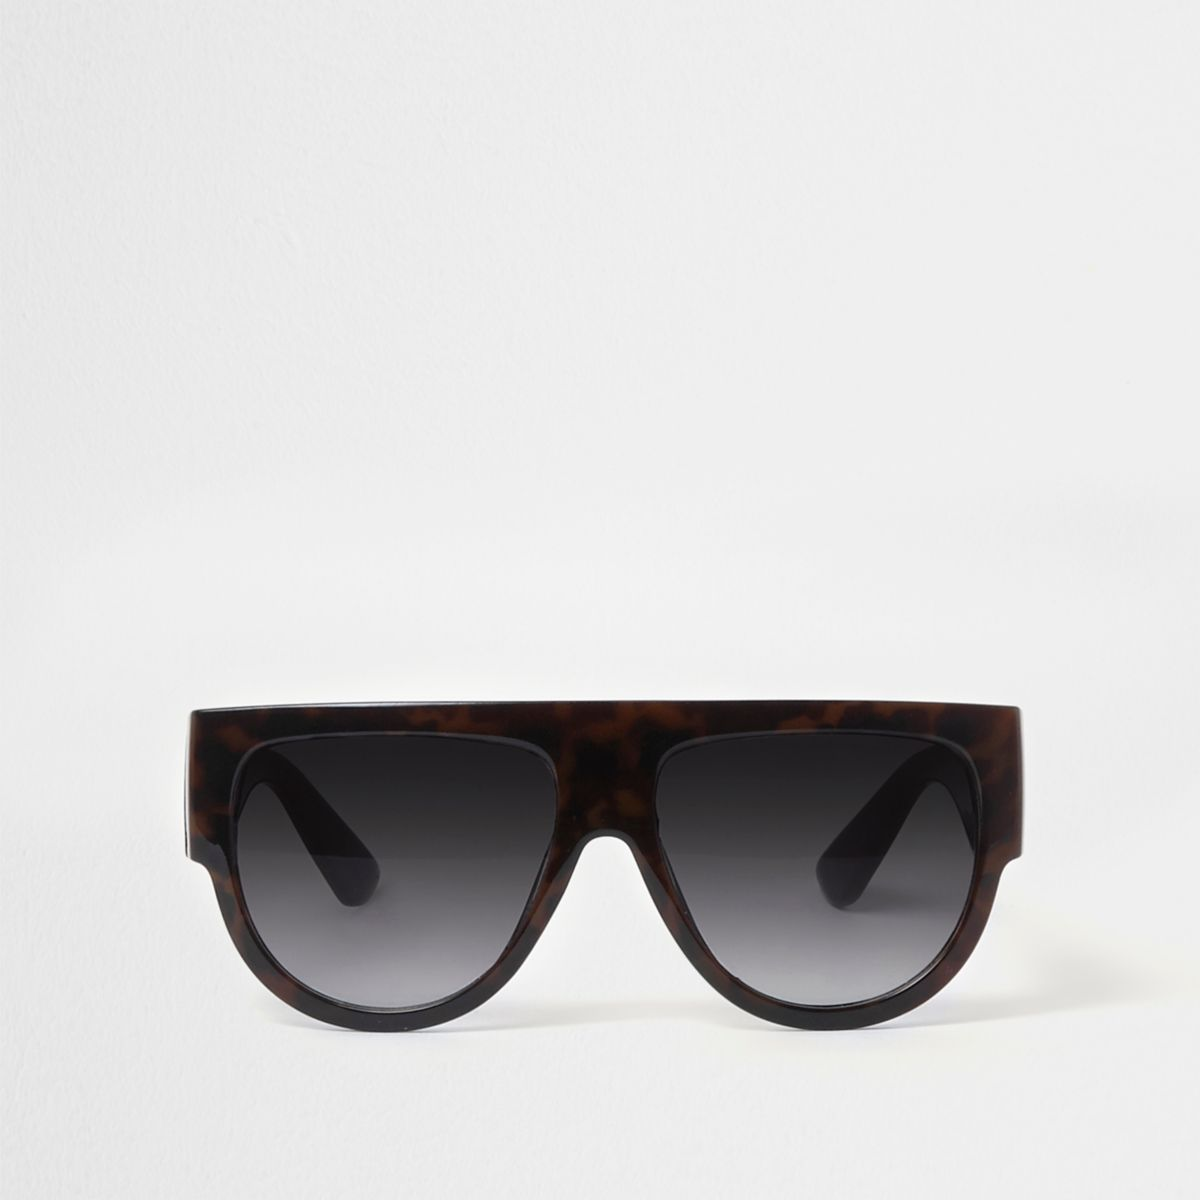 Black flat top tortoiseshell sunglasses